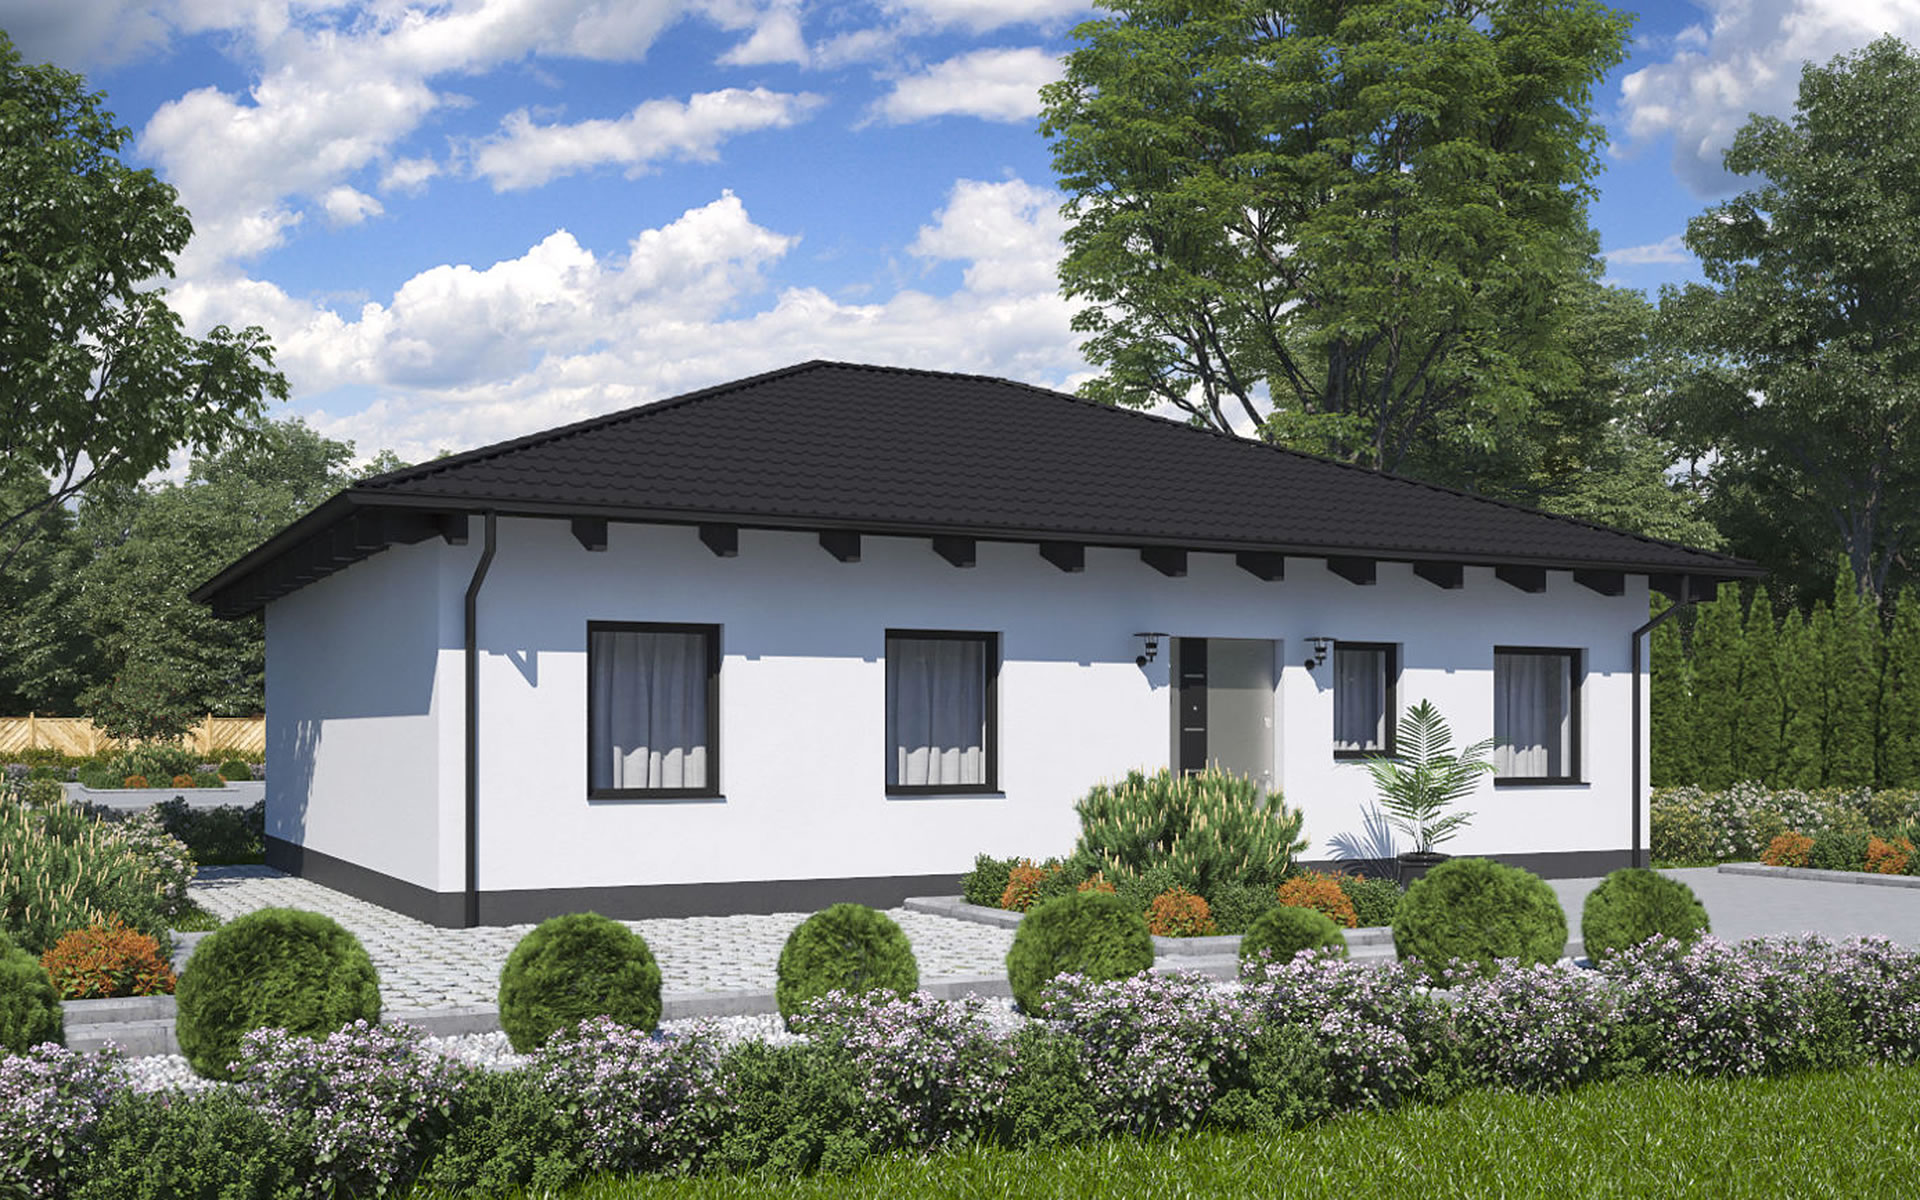 Bungalow BS 80 - B&S Selbstbausysteme GmbH & Co. KG